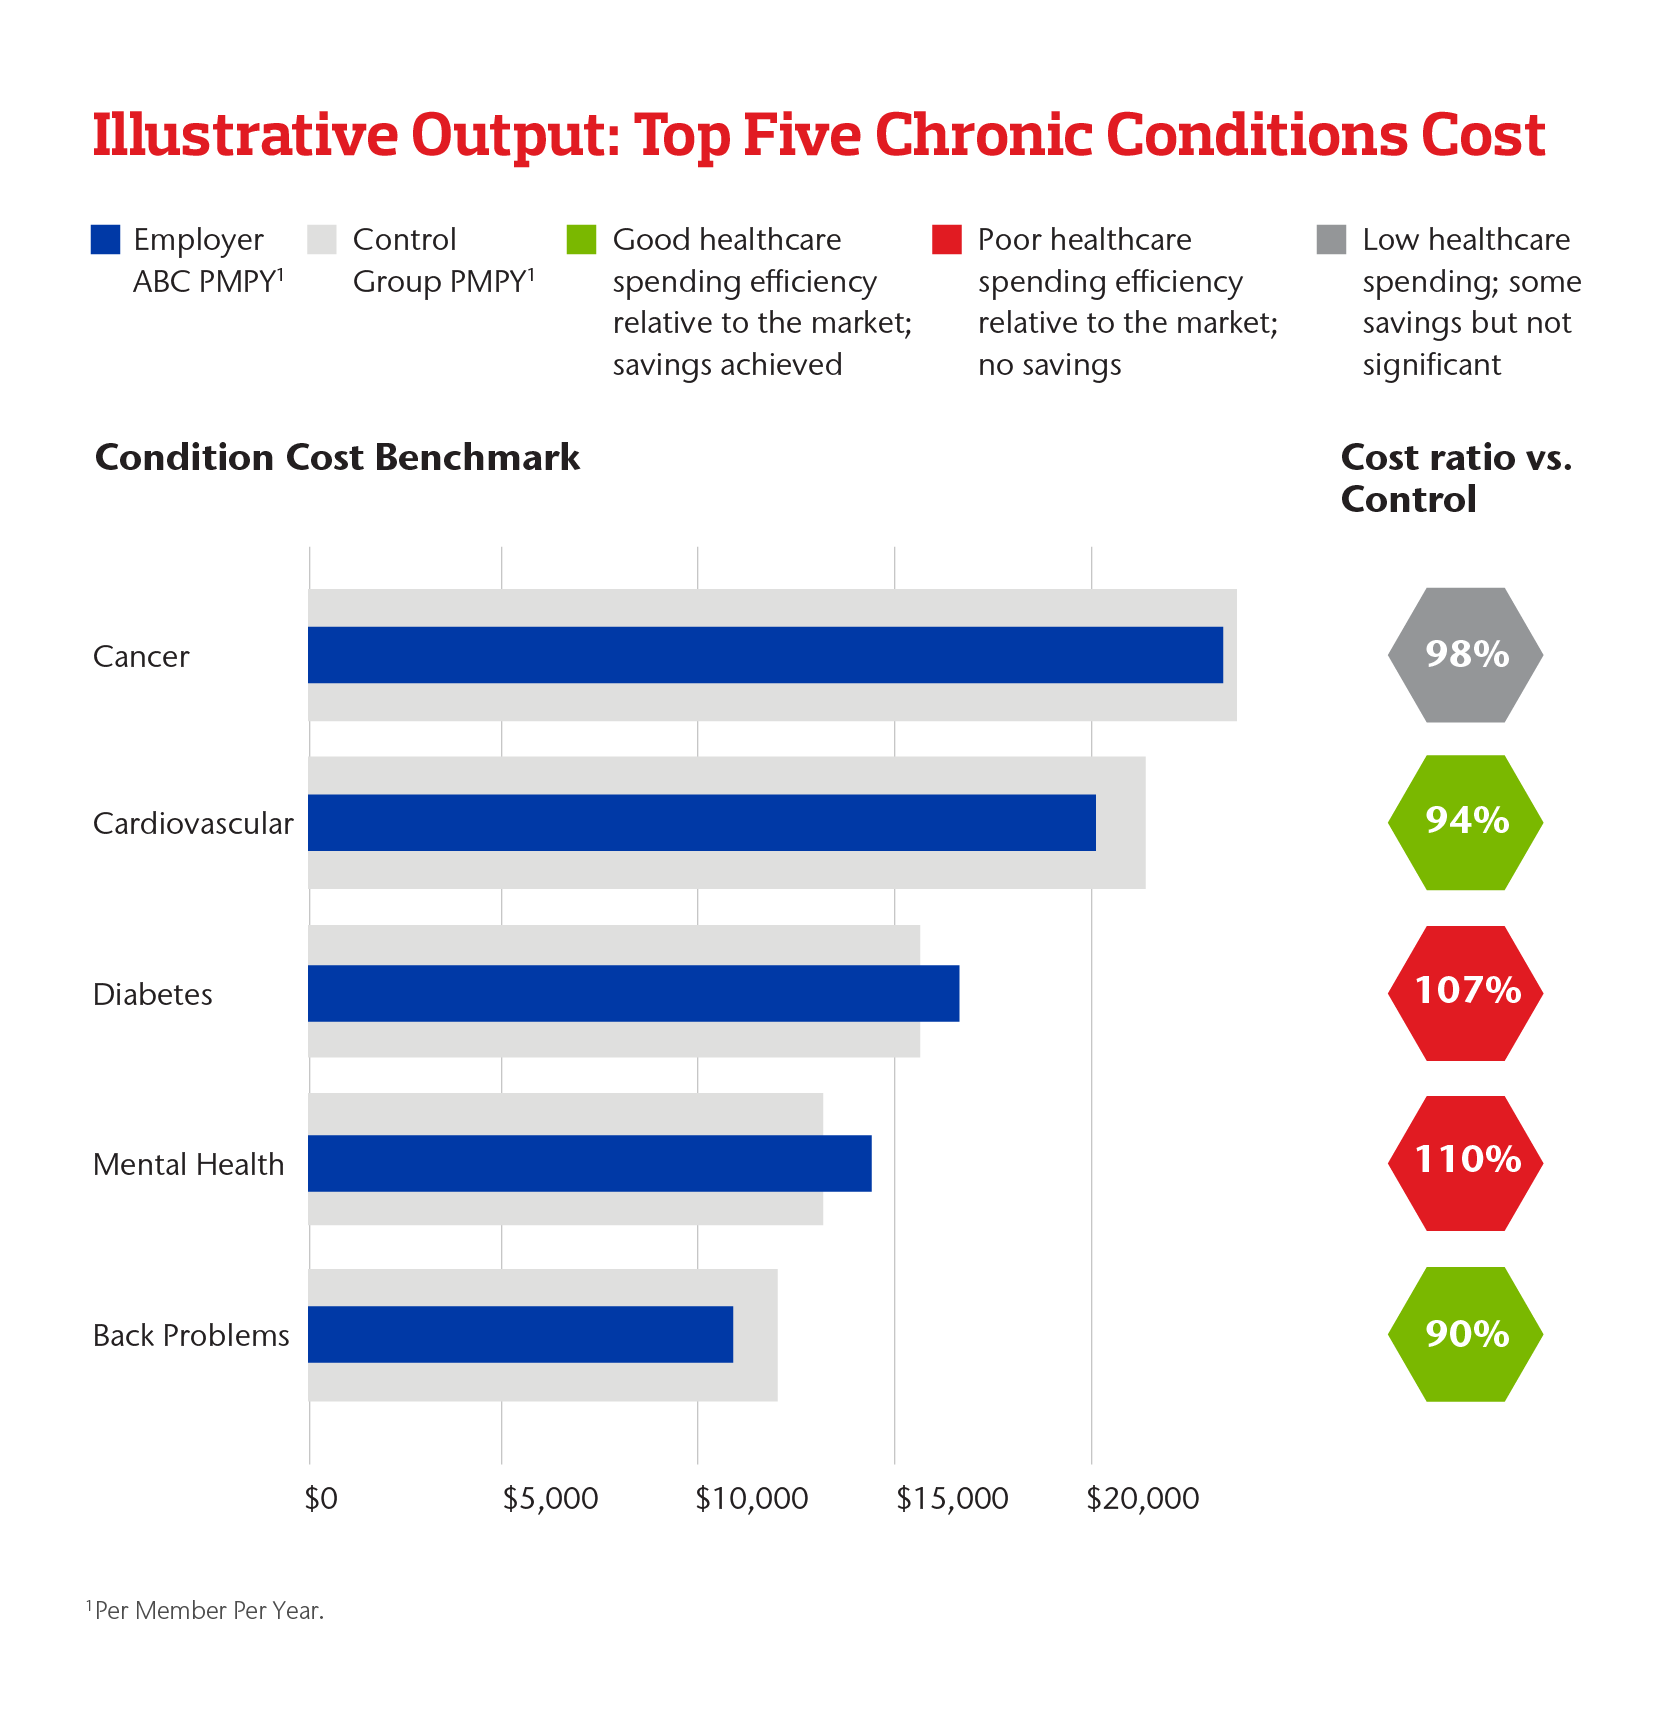 Illustrative Output: Top Five Chronic Conditions Cost